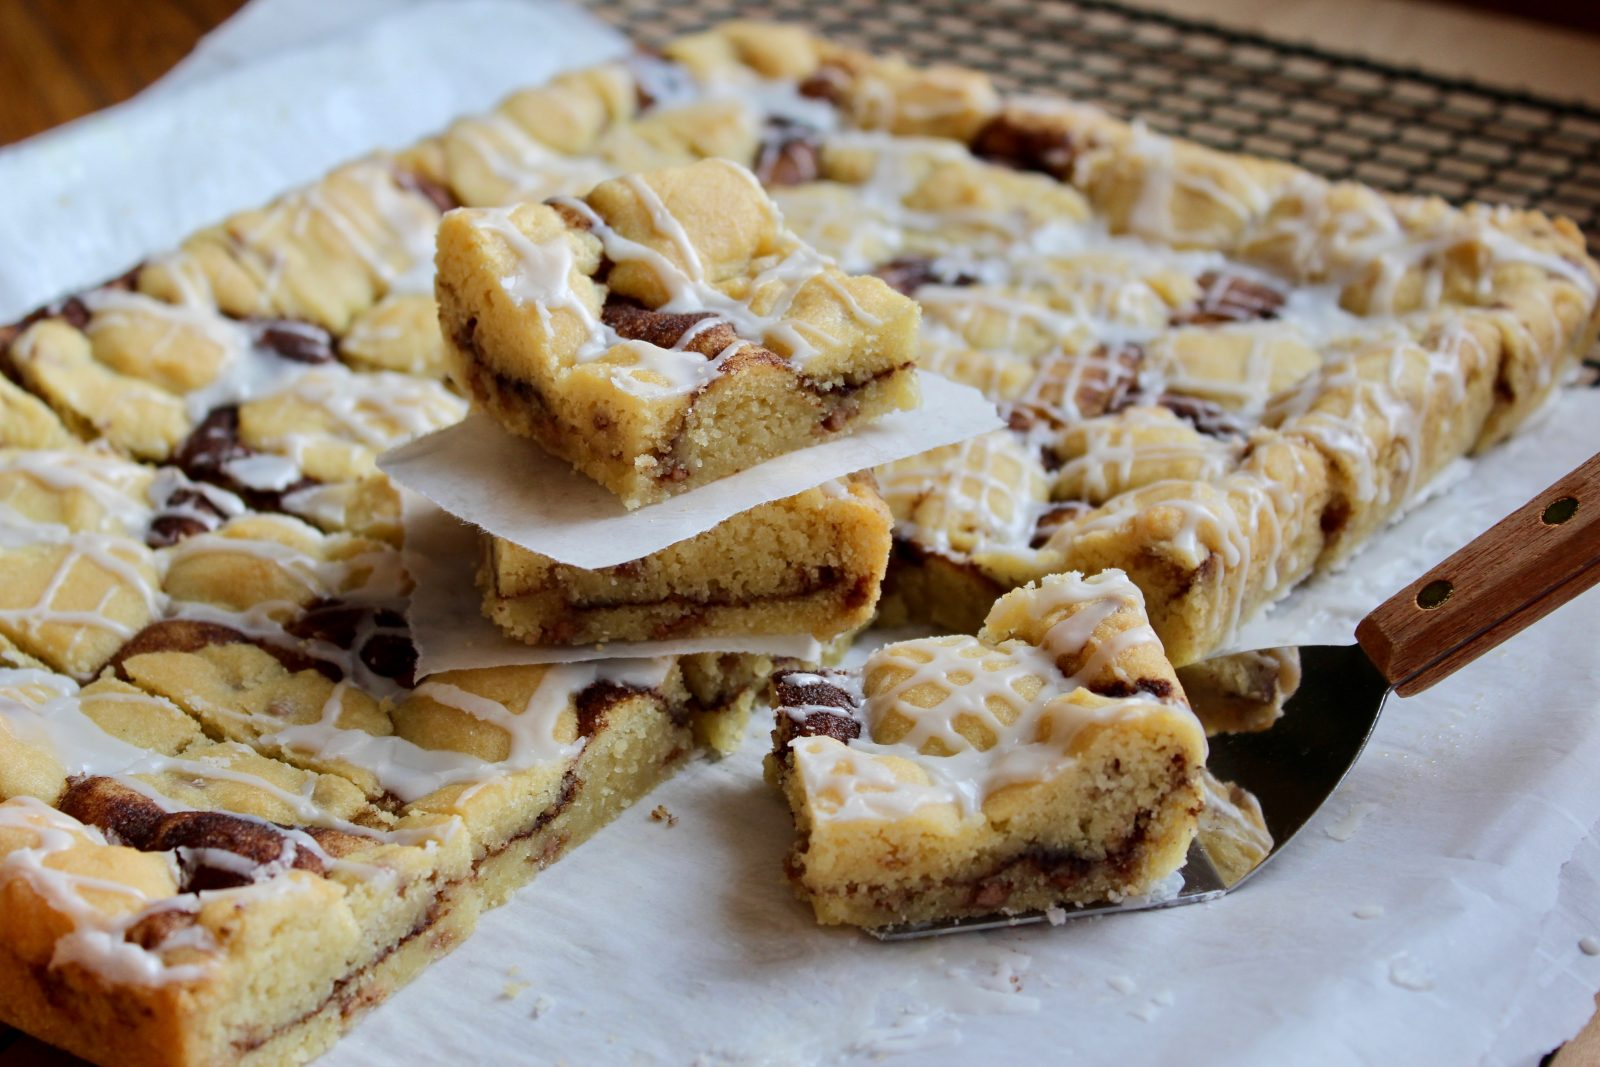 Cinnamon chip snickerdoodle bars cut and ready to serve